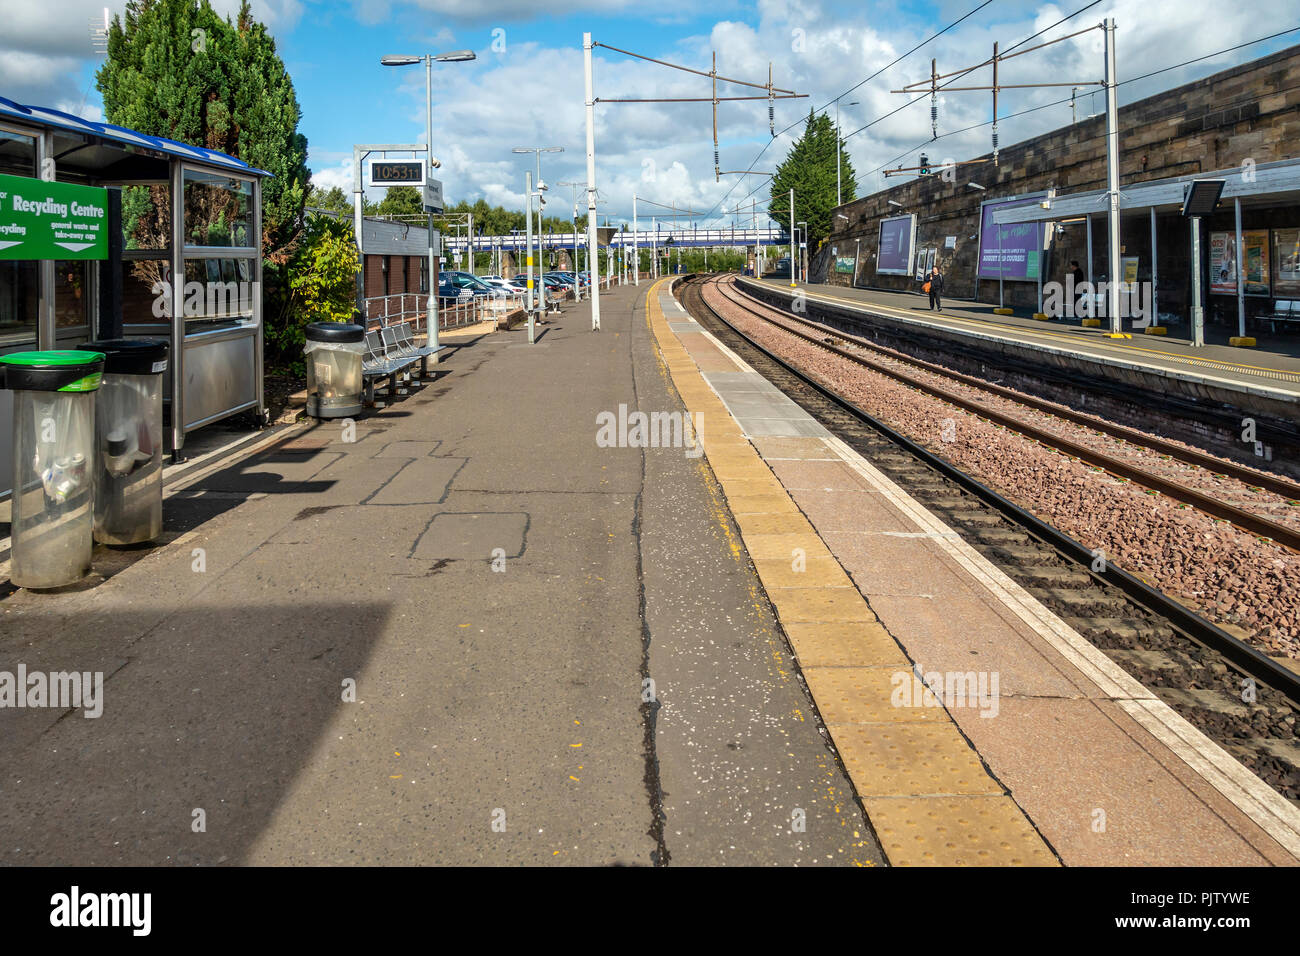 Two of the platforms and rail tracks at Motherwell Station in North Lanarkshire, Scotland. Two waiting pasengers, seats, car park, recycling bins, clo - Stock Image